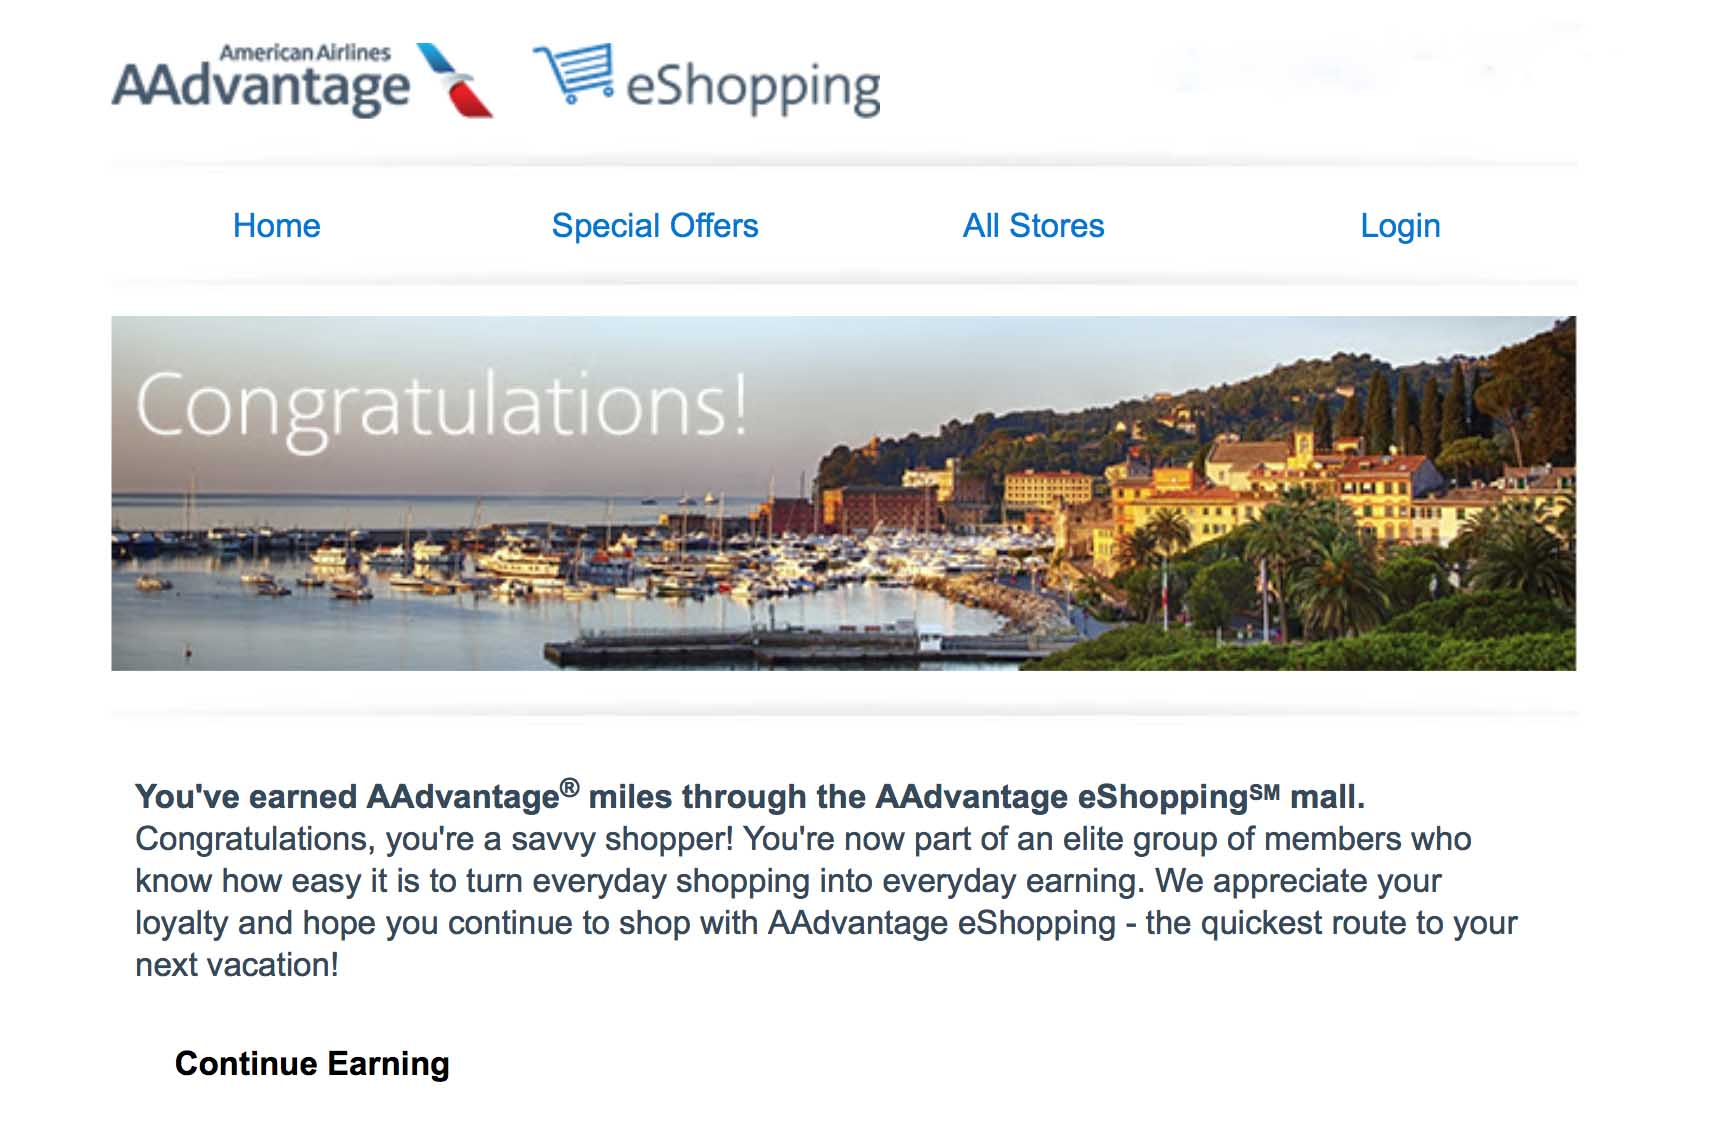 Screen shot from email after earning miles through the AAdvantage eShopping portal.